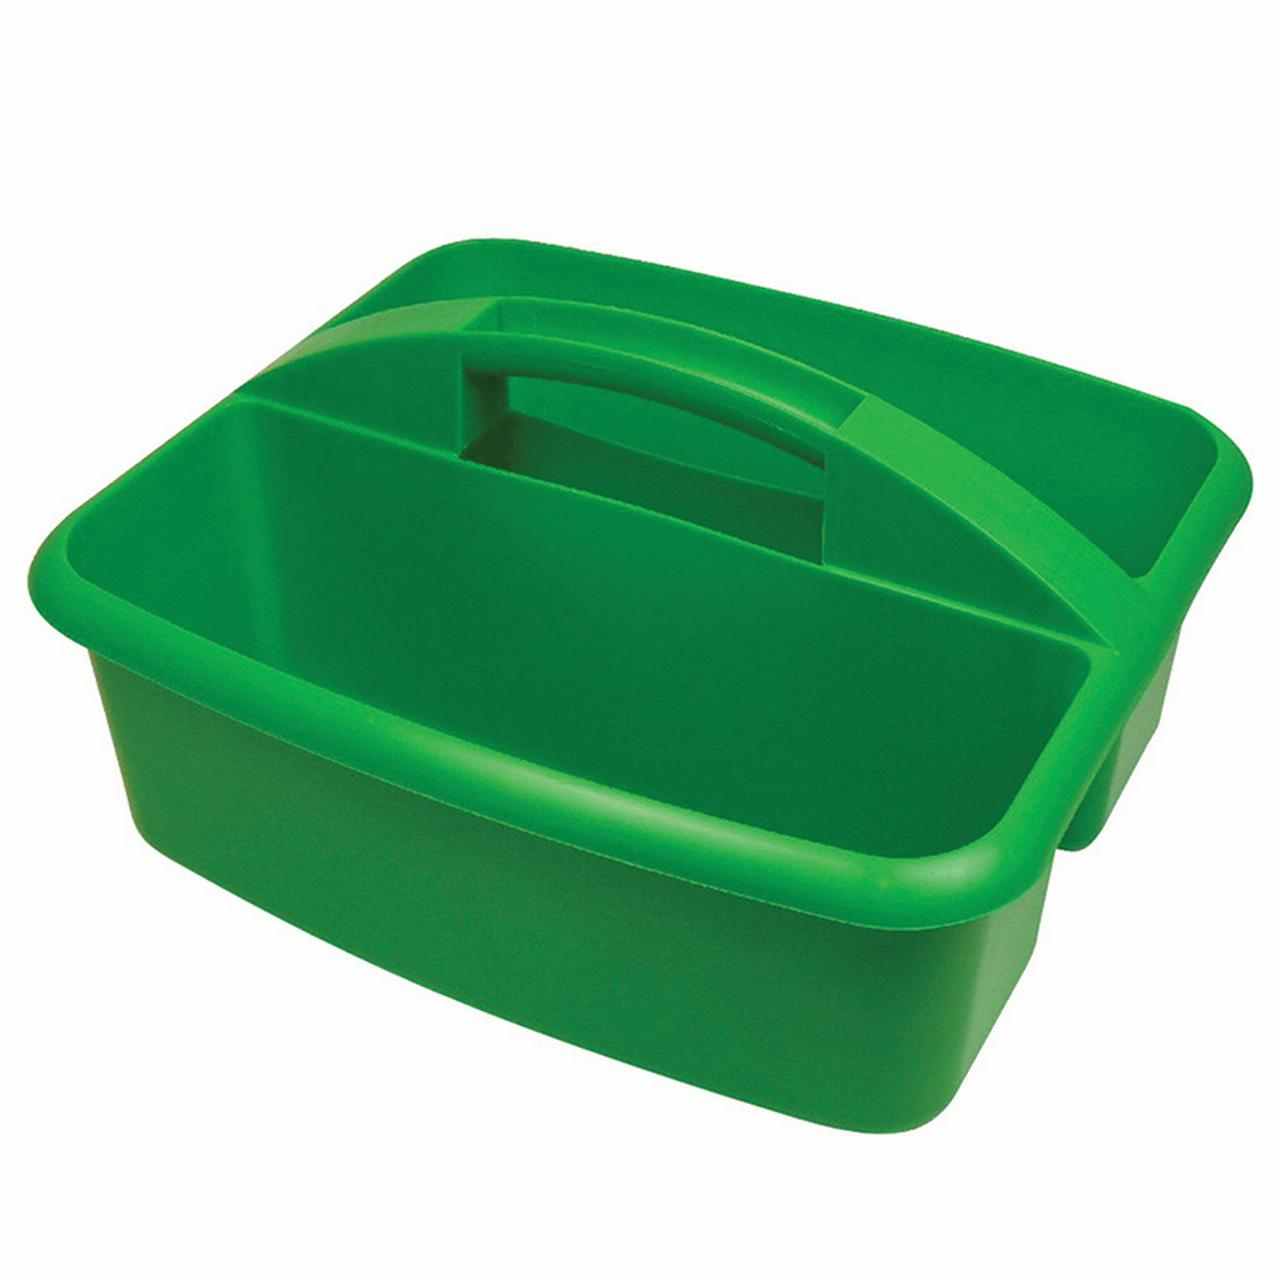 Large Utility Caddy Green - image 1 of 1